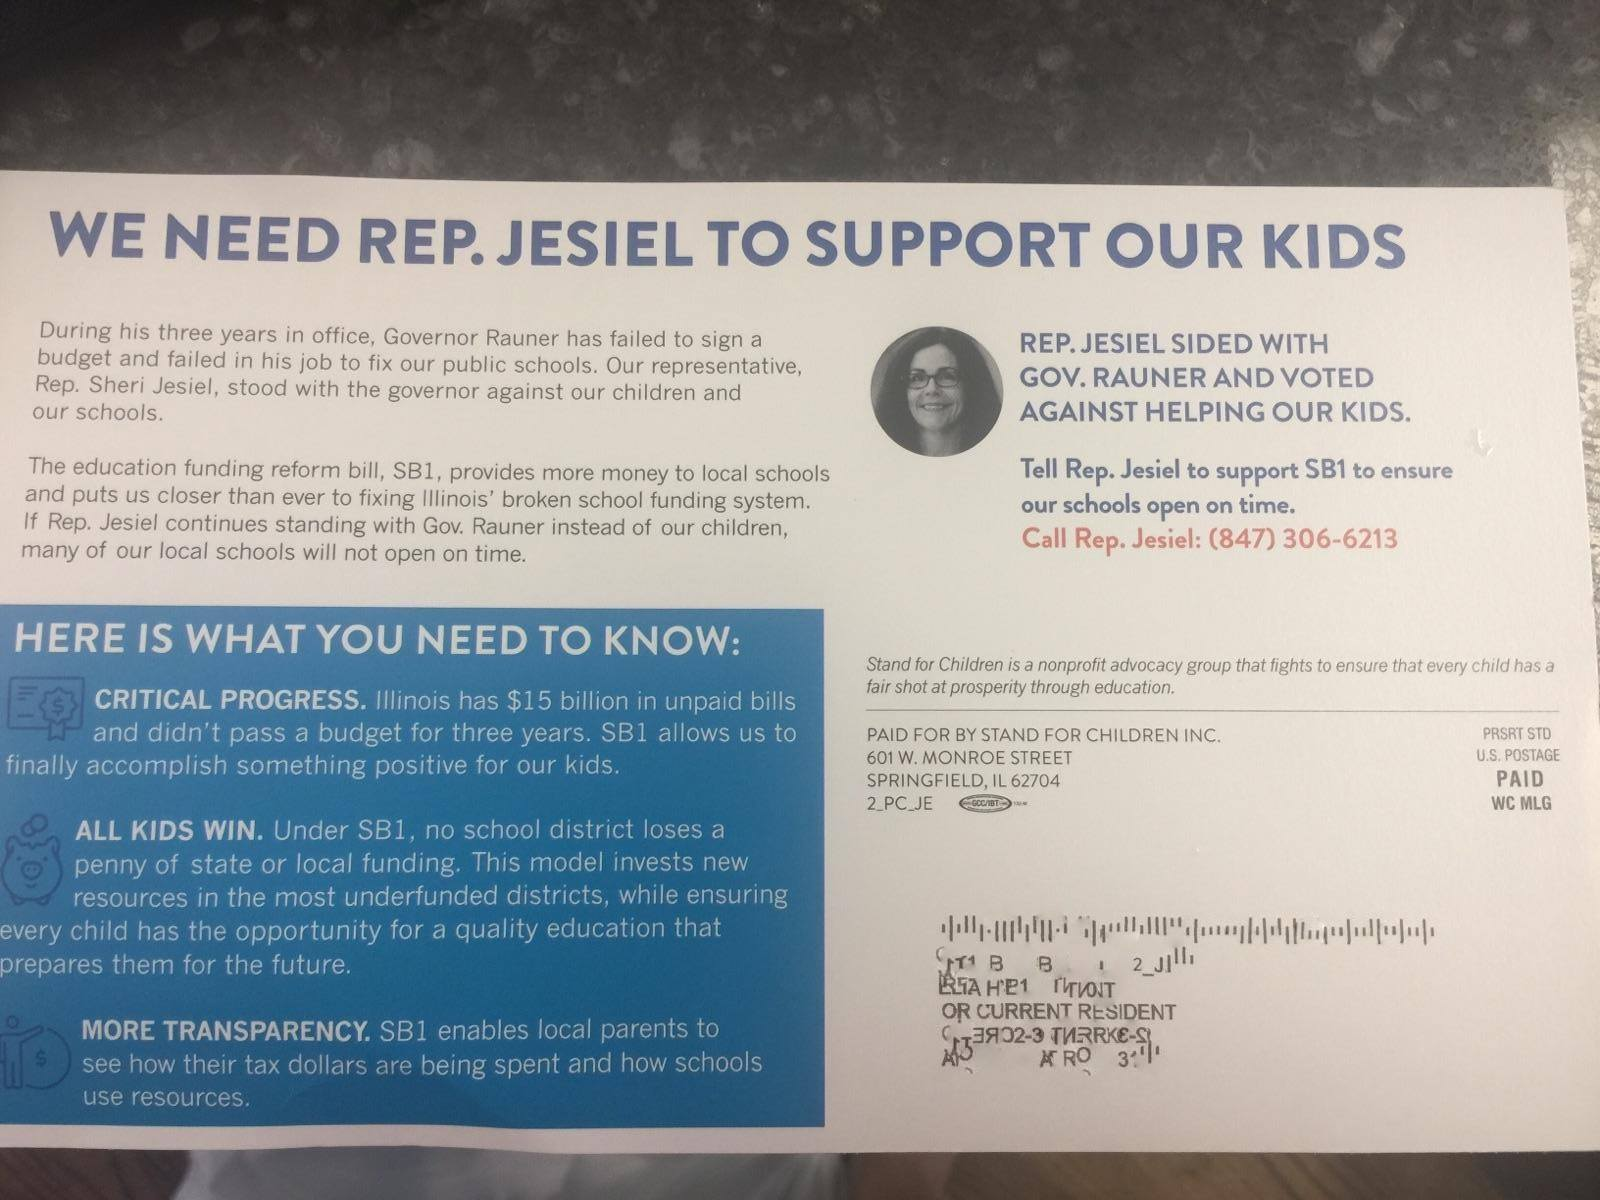 Ides illinois file my certification - You May Have Recently Received This Flyer From A Group Called Stand For Children In Your Mail If You Have Been Keeping Up With My Posts About My